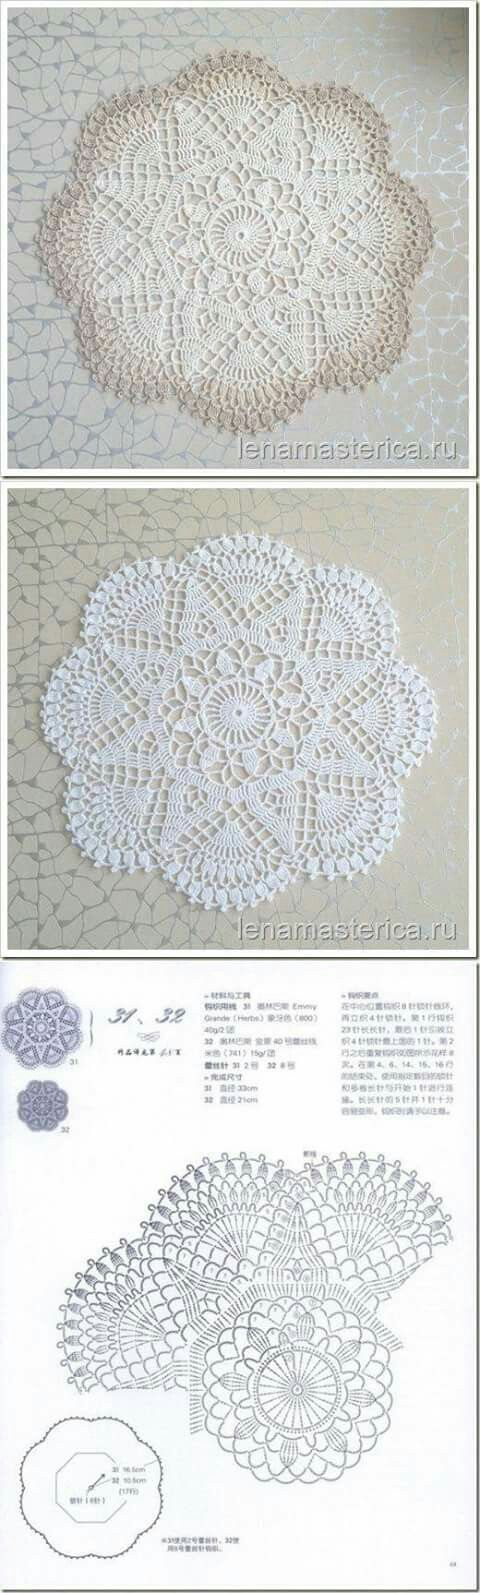 22 Best Crochet Doilies Images On Pinterest Crochet Patterns